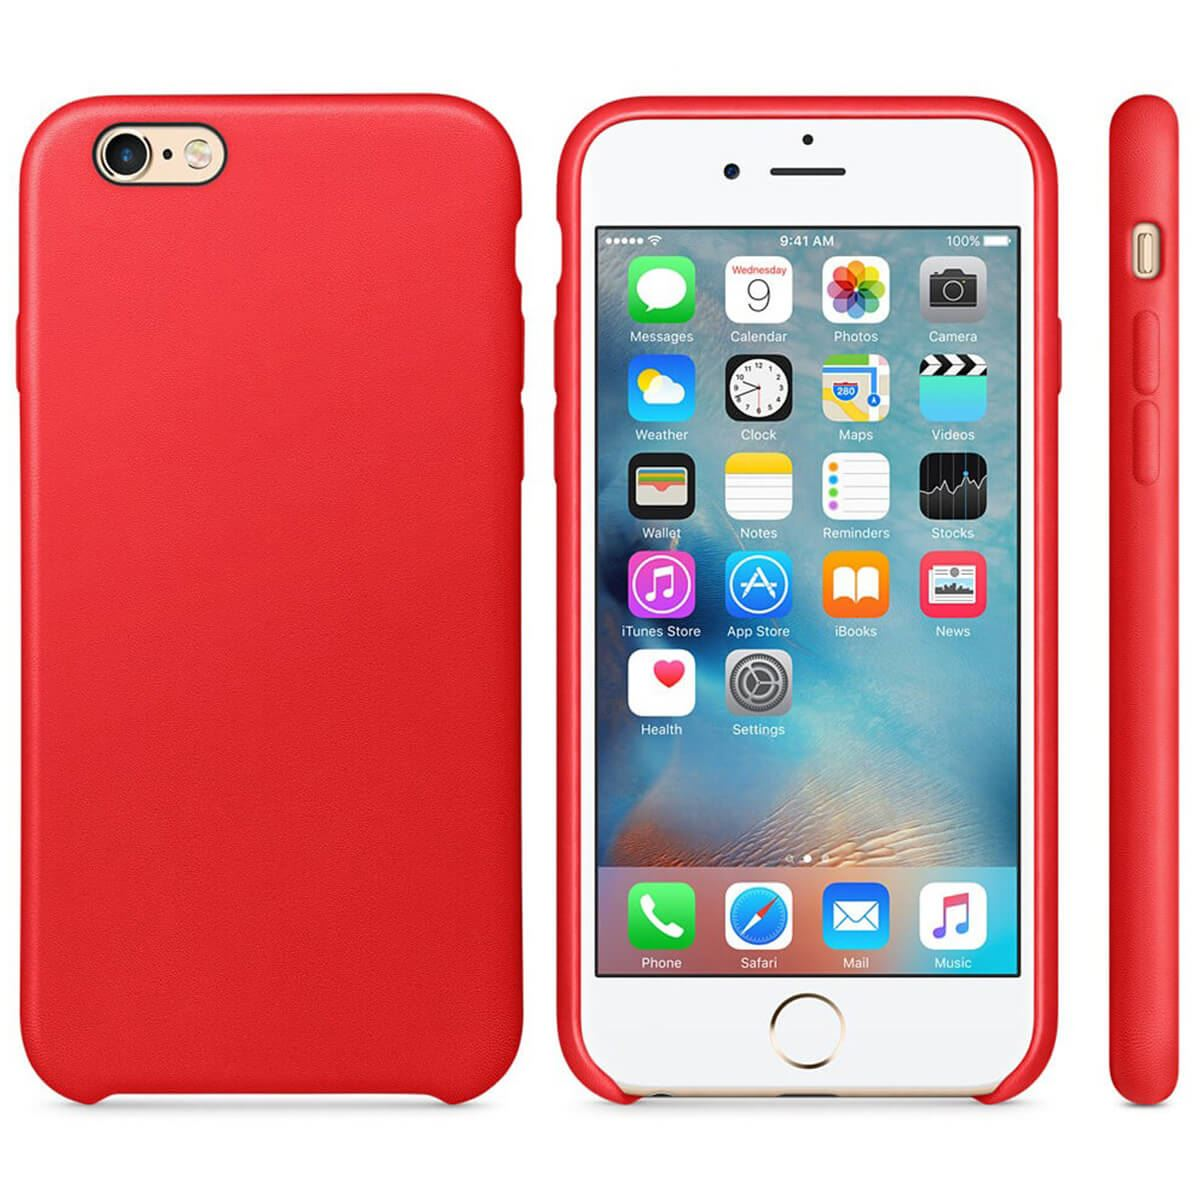 Liquid-Silicone-Shockproof-Case-For-Apple-iPhone-Soft-Matte-Back-Phone-Cover thumbnail 31